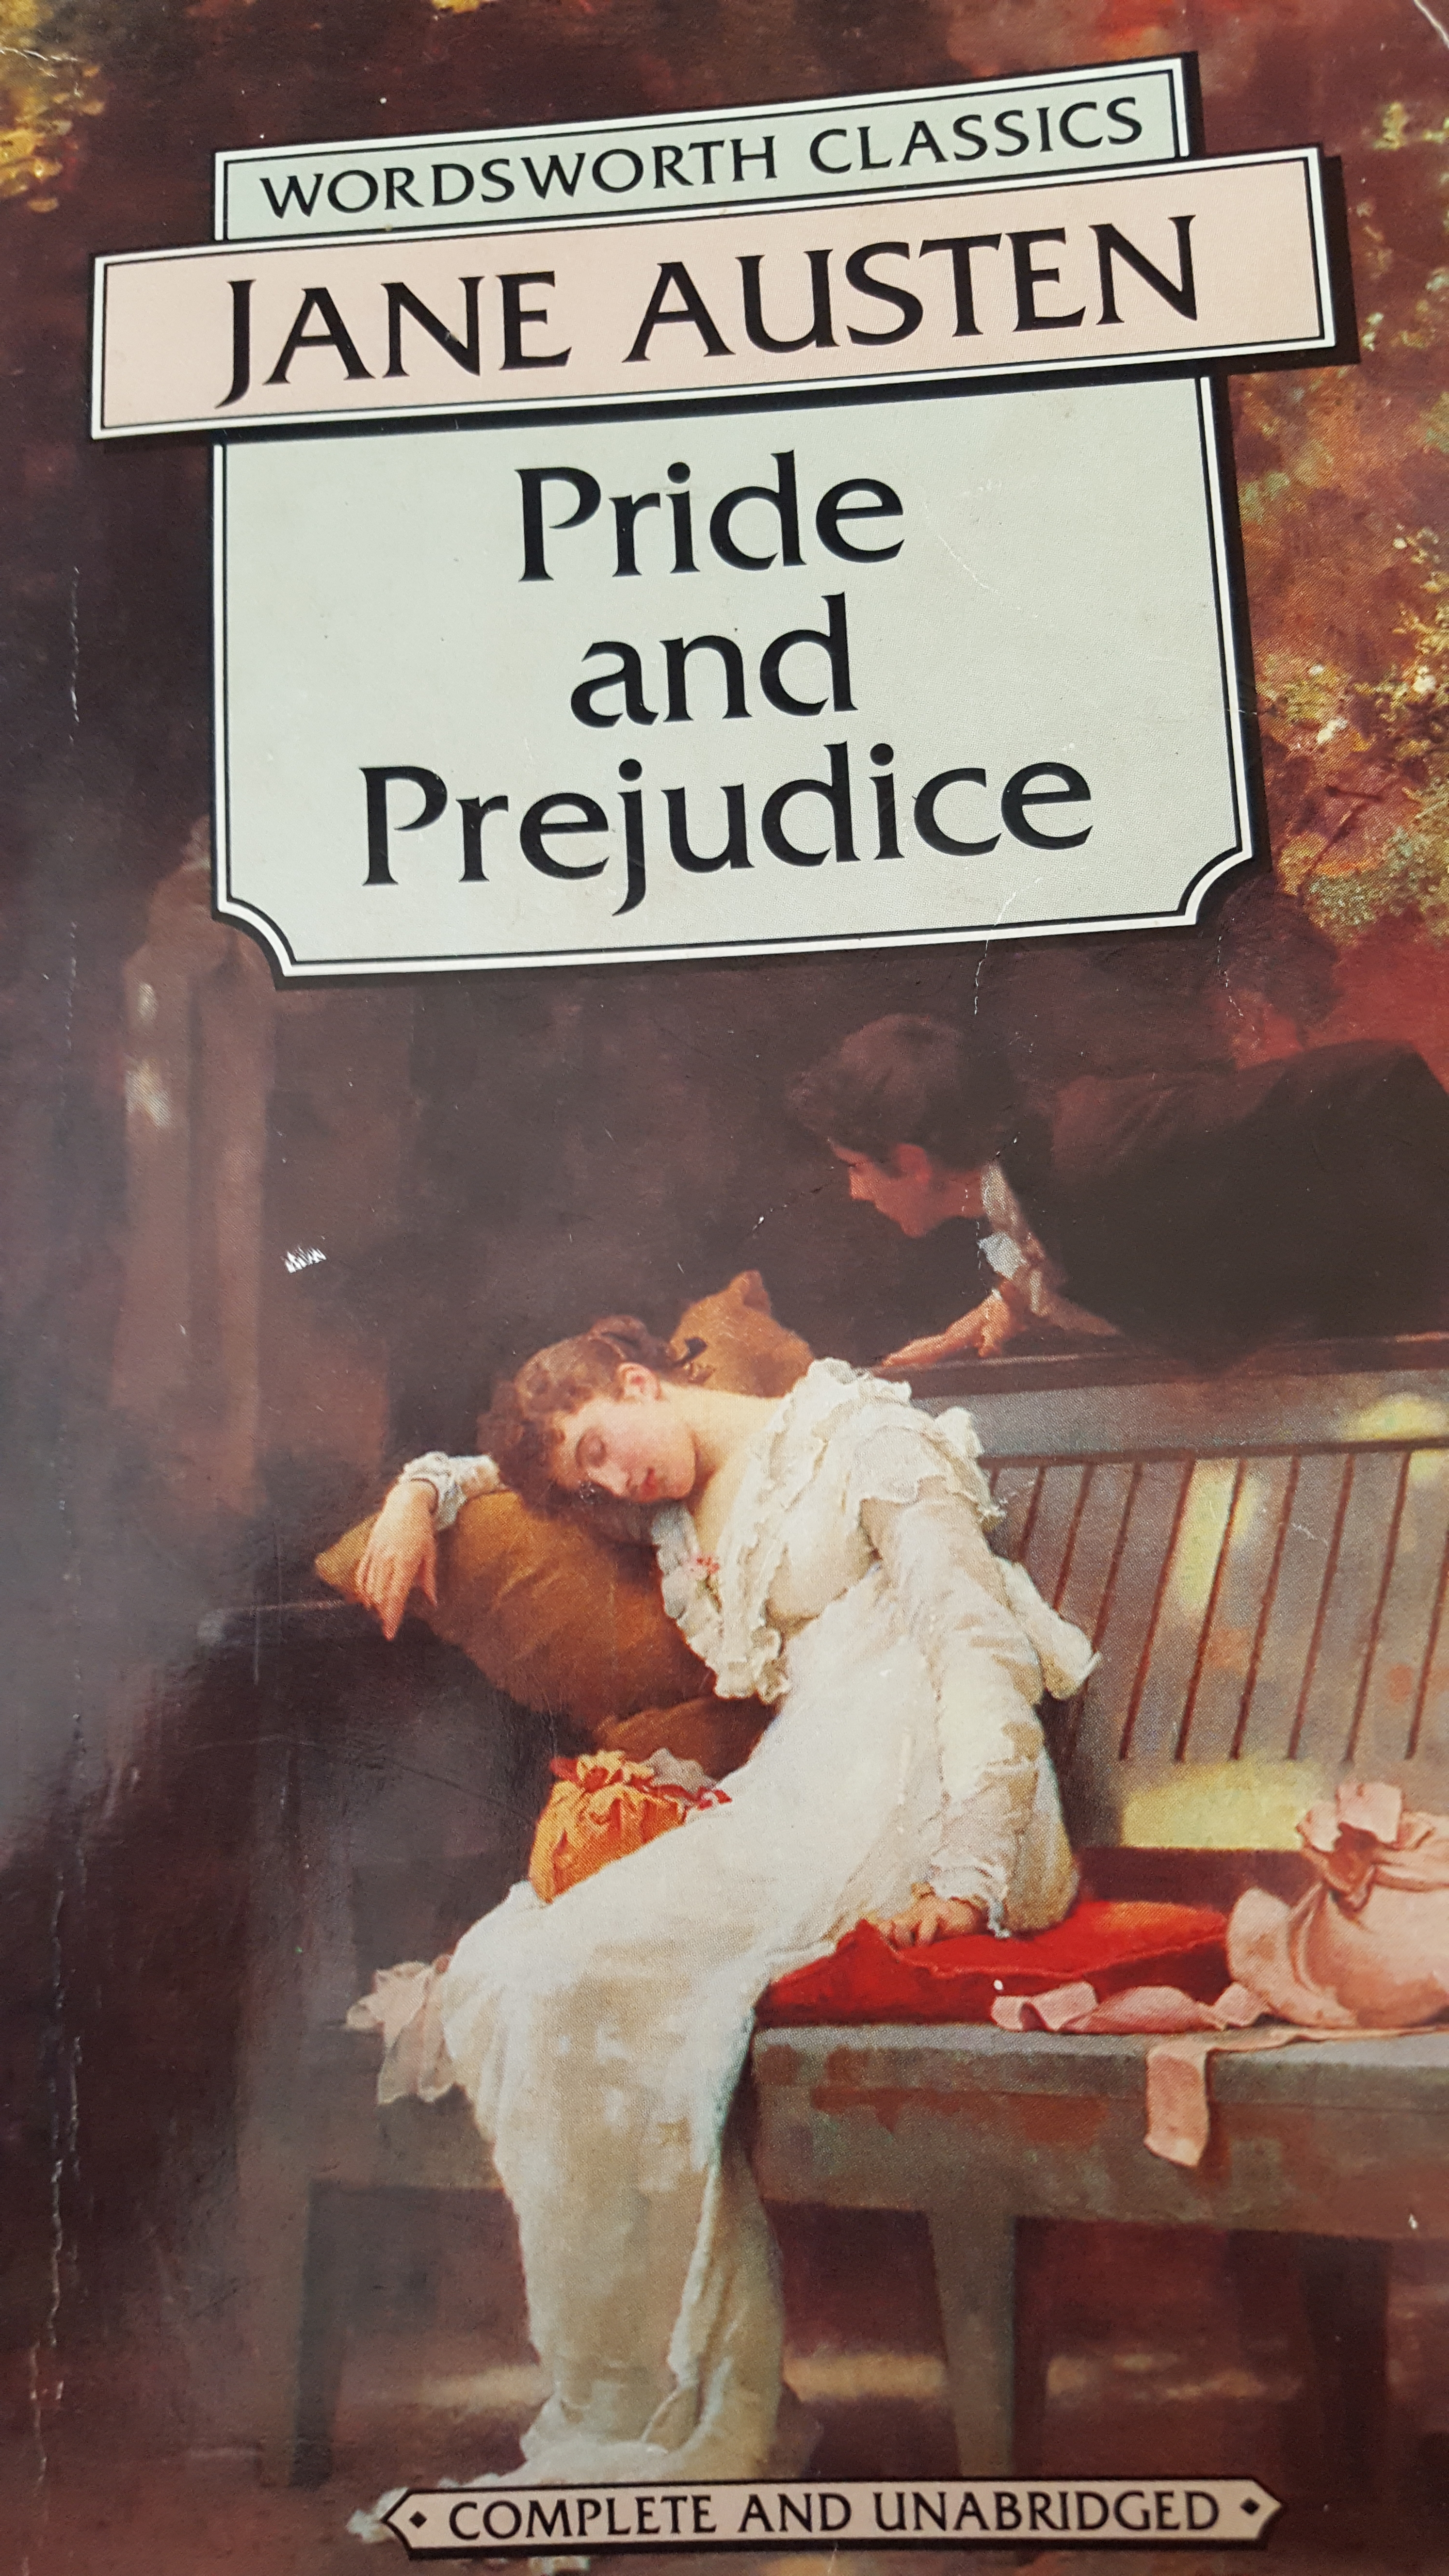 review on relationships in pride and Home free essays pride and prejudice: book review pride and prejudice, a classic novel by jane austen, tells the story of a complicated love that develops between not only is this story for those troubled in relationships, but the fact that it is a beautiful love story should not be disregarded.